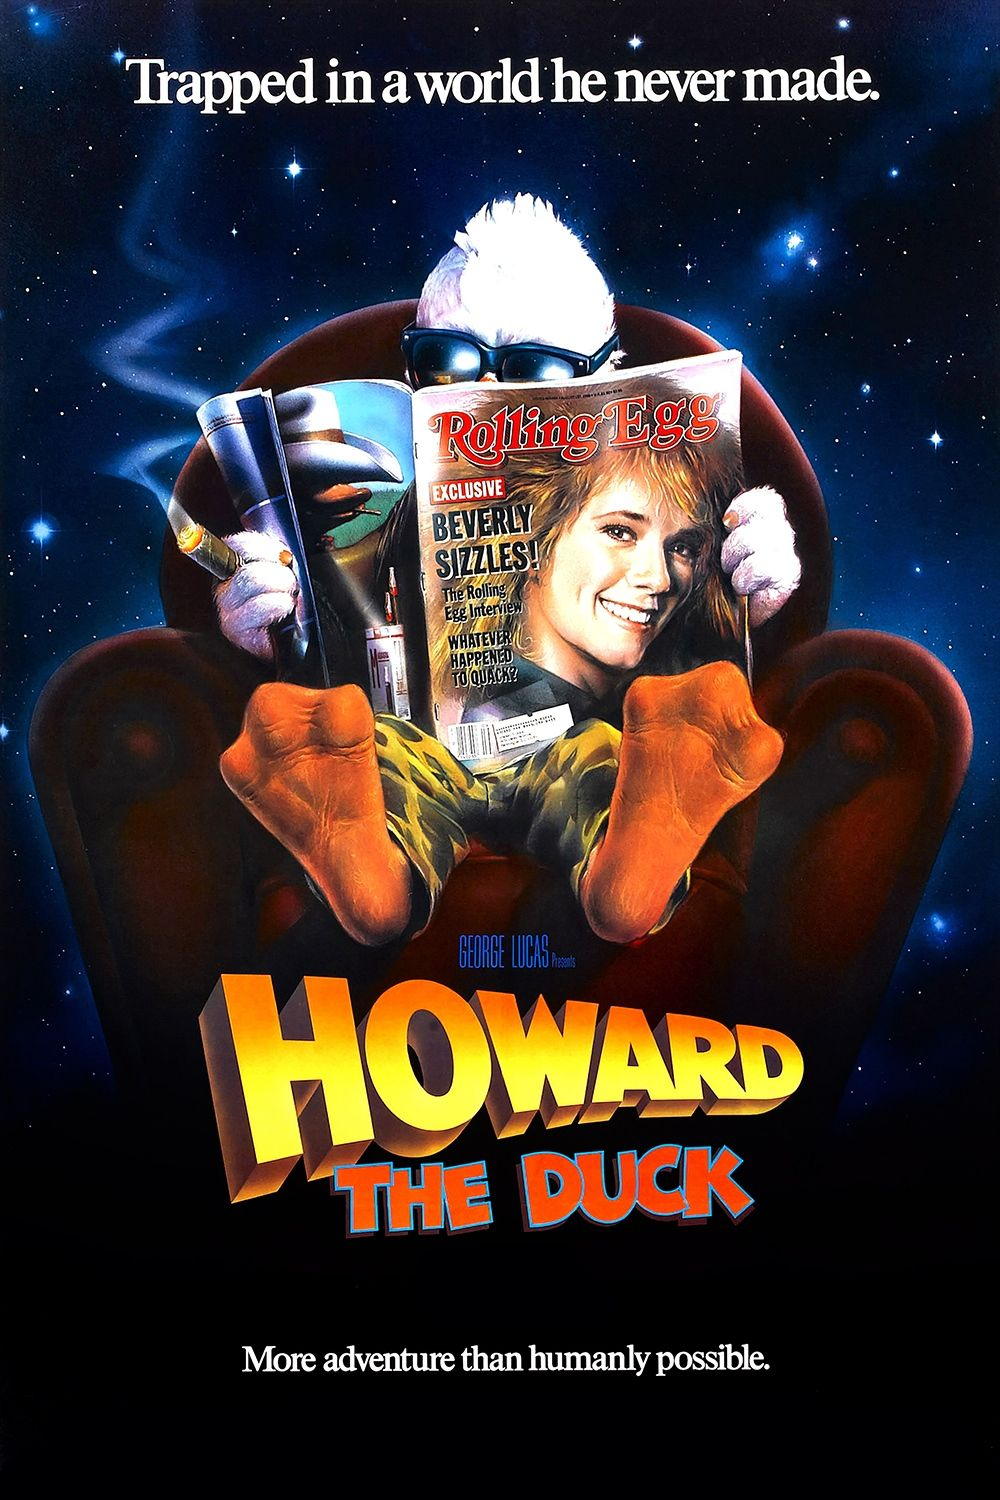 Howard The Duck 1986 Yes I Am A Proud Owner Of This Movie Worst Movies 80s Movies Howard The Duck